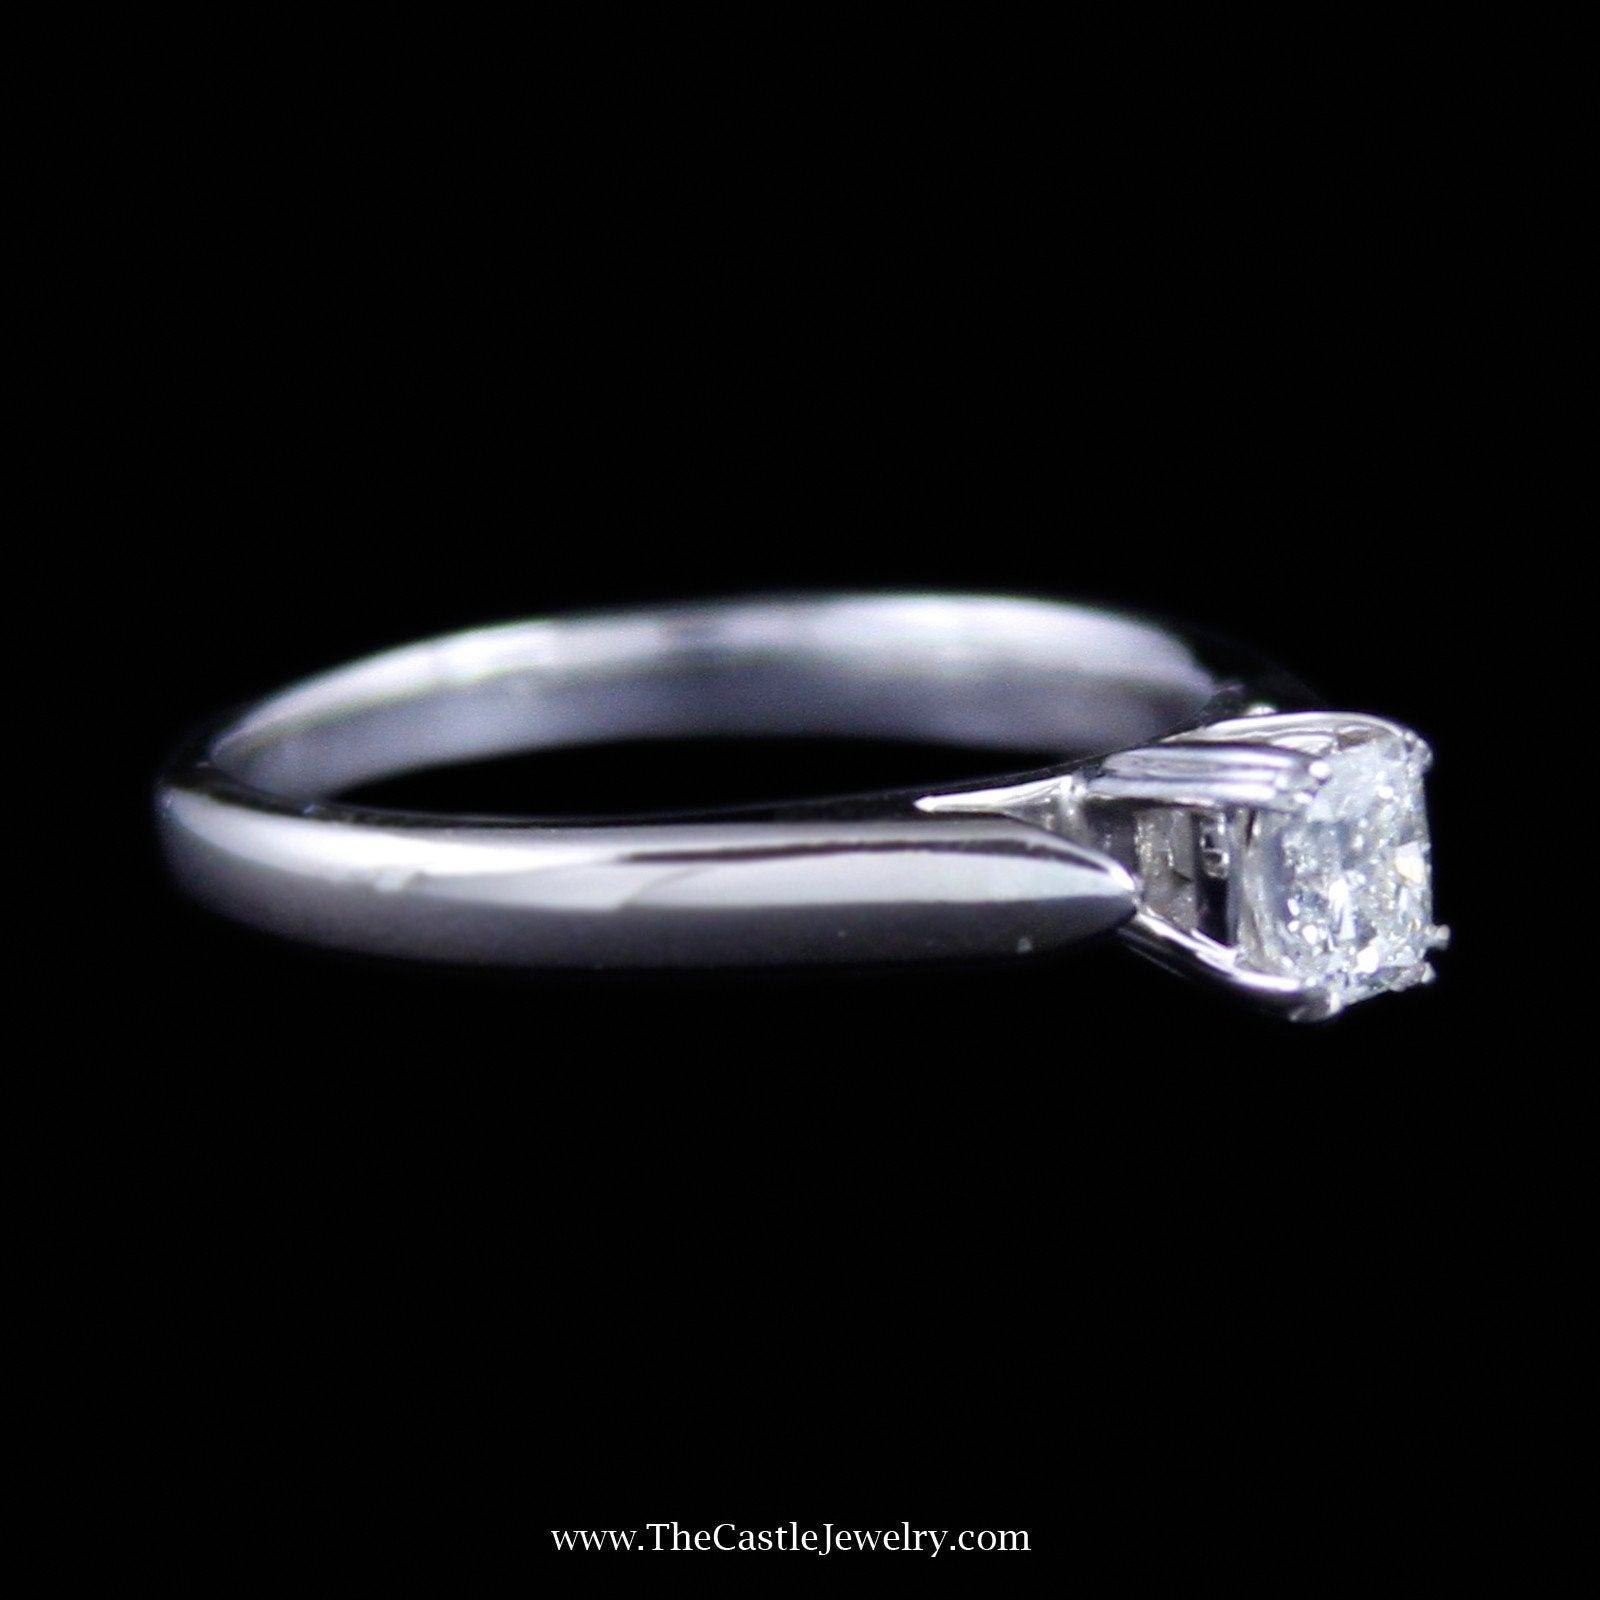 Gorgeous Radiant Cut Diamond Solitaire Engagement Ring in 14K White Gold-2